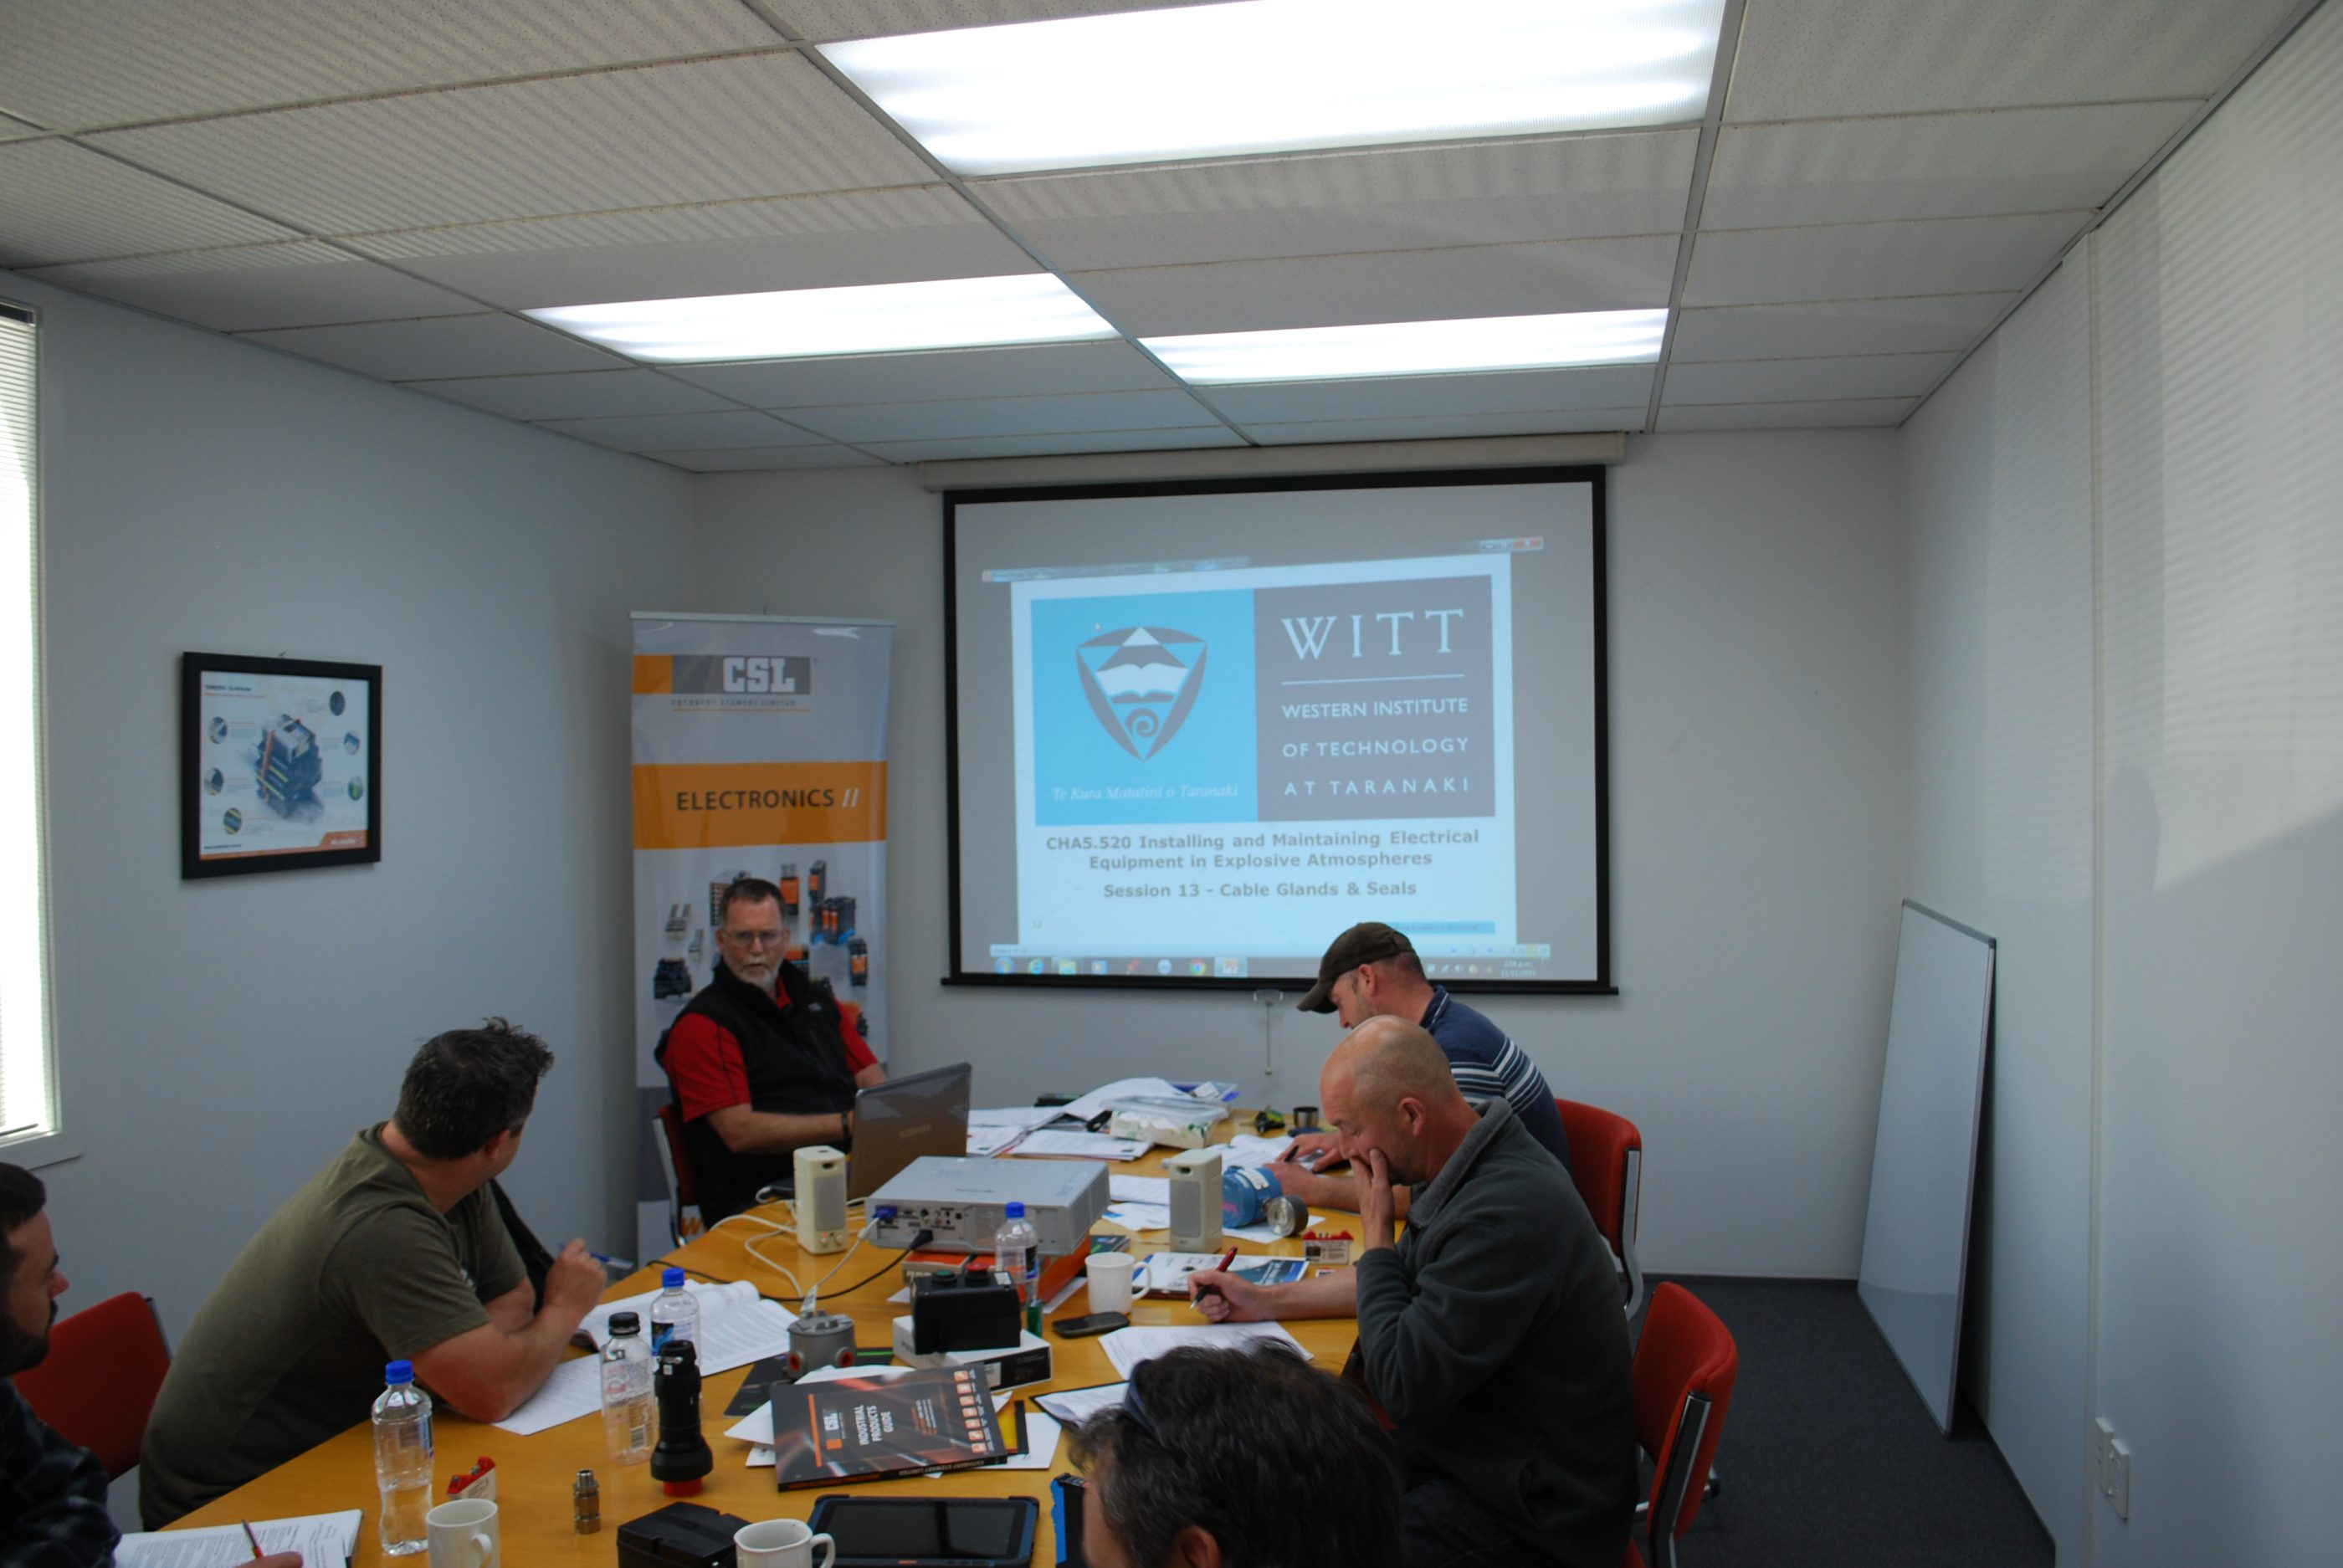 Peter Lind of WITT starting the course